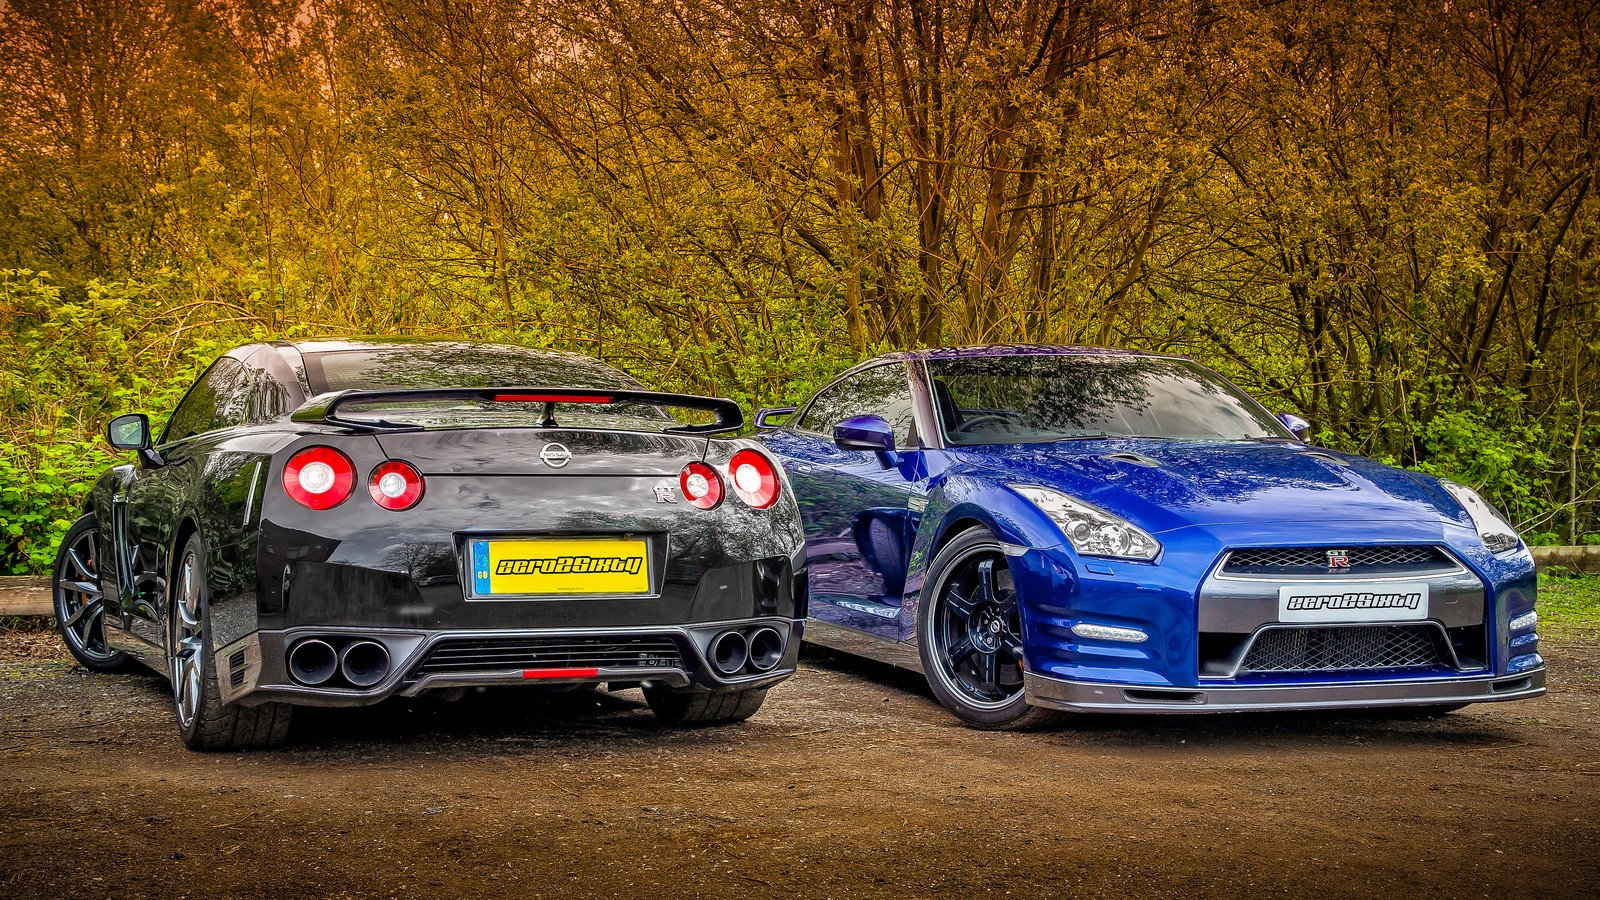 gt r nismo nissan r35 tuning supercar coupe japan cars blue bleu blu wallpaper 1600x900. Black Bedroom Furniture Sets. Home Design Ideas